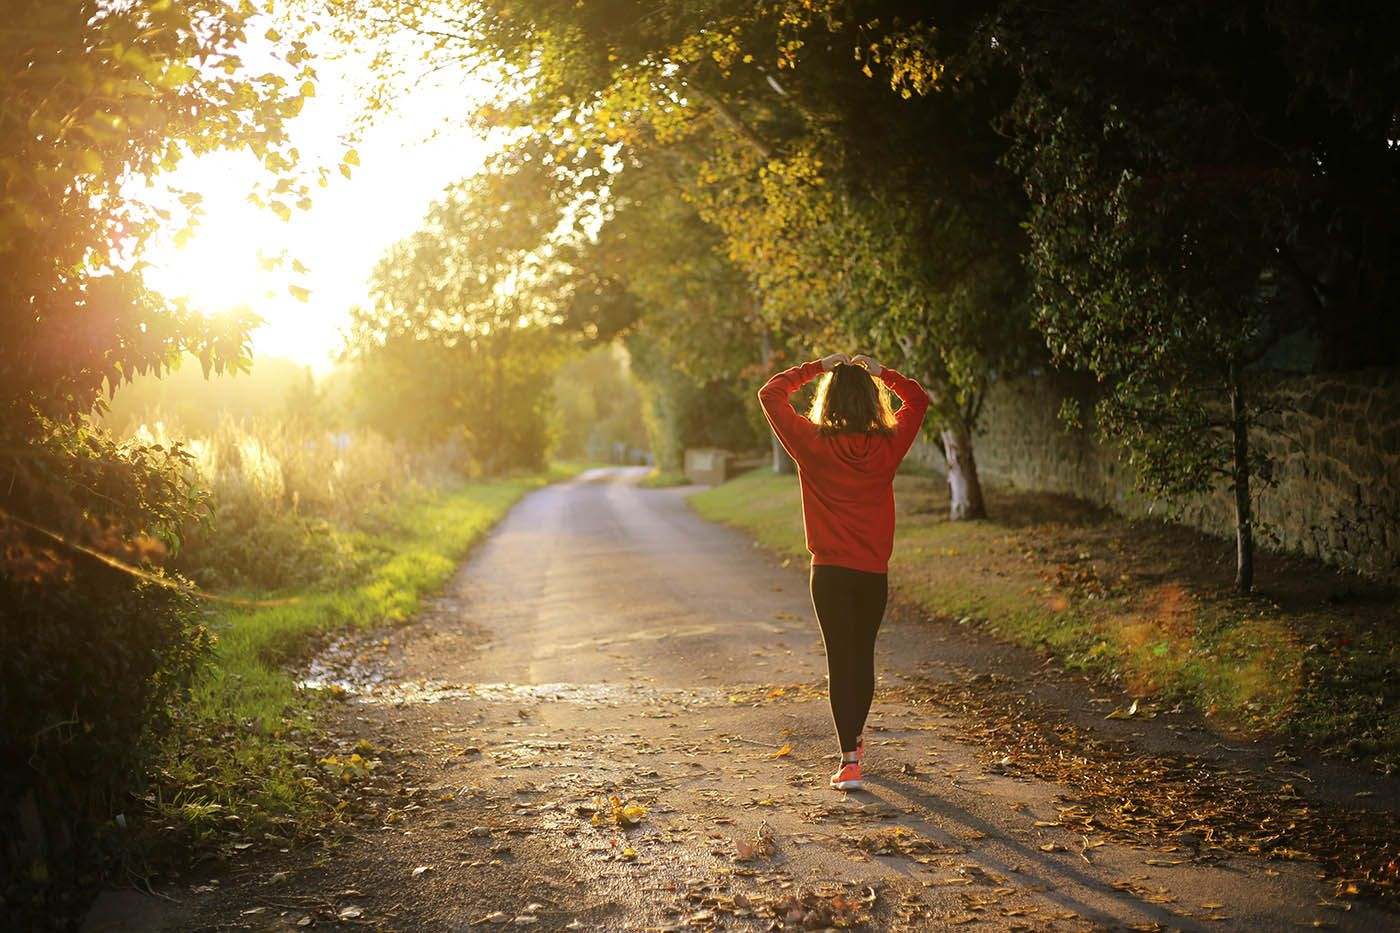 If run rage ever takes over your blissful hour of exercise, remember these tips to bring you back to your place of zen.